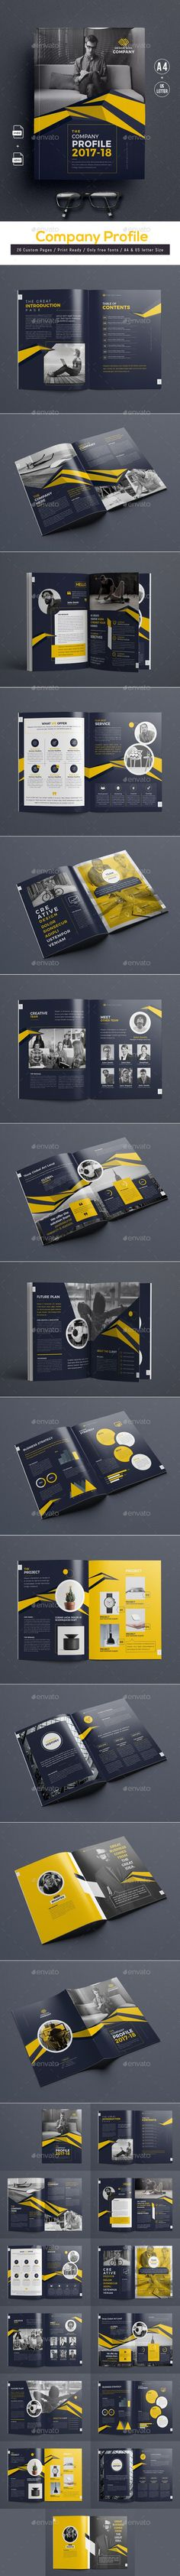 This Brochure will turn youbusiness image to the next level. our design is quality full art of you choice. Creative Brochure, Brochure Design, Branding Design, Corporate Brochure, Brochure Template, Book Design, Layout Design, Print Design, Company Profile Template